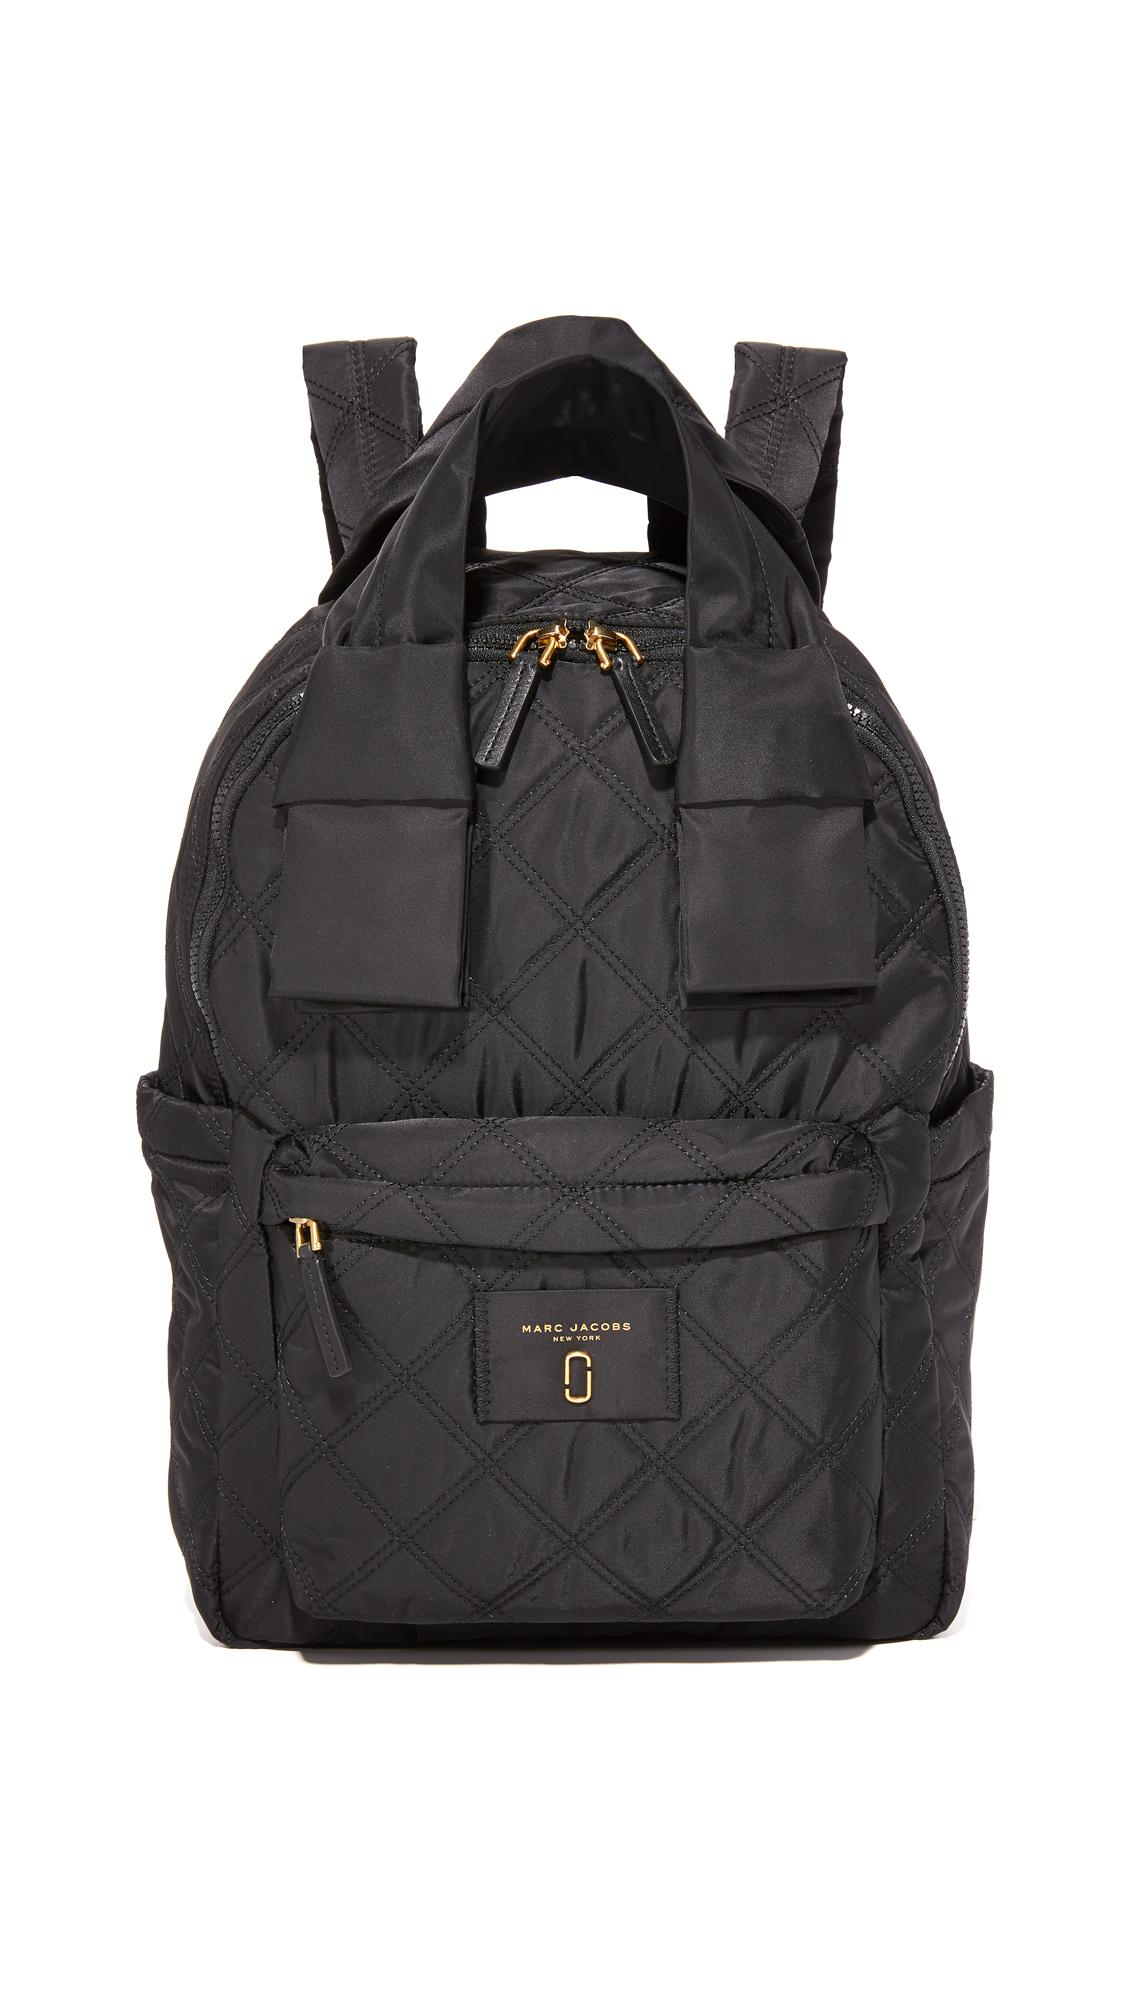 lyst marc jacobs nylon knot large backpack in black. Black Bedroom Furniture Sets. Home Design Ideas